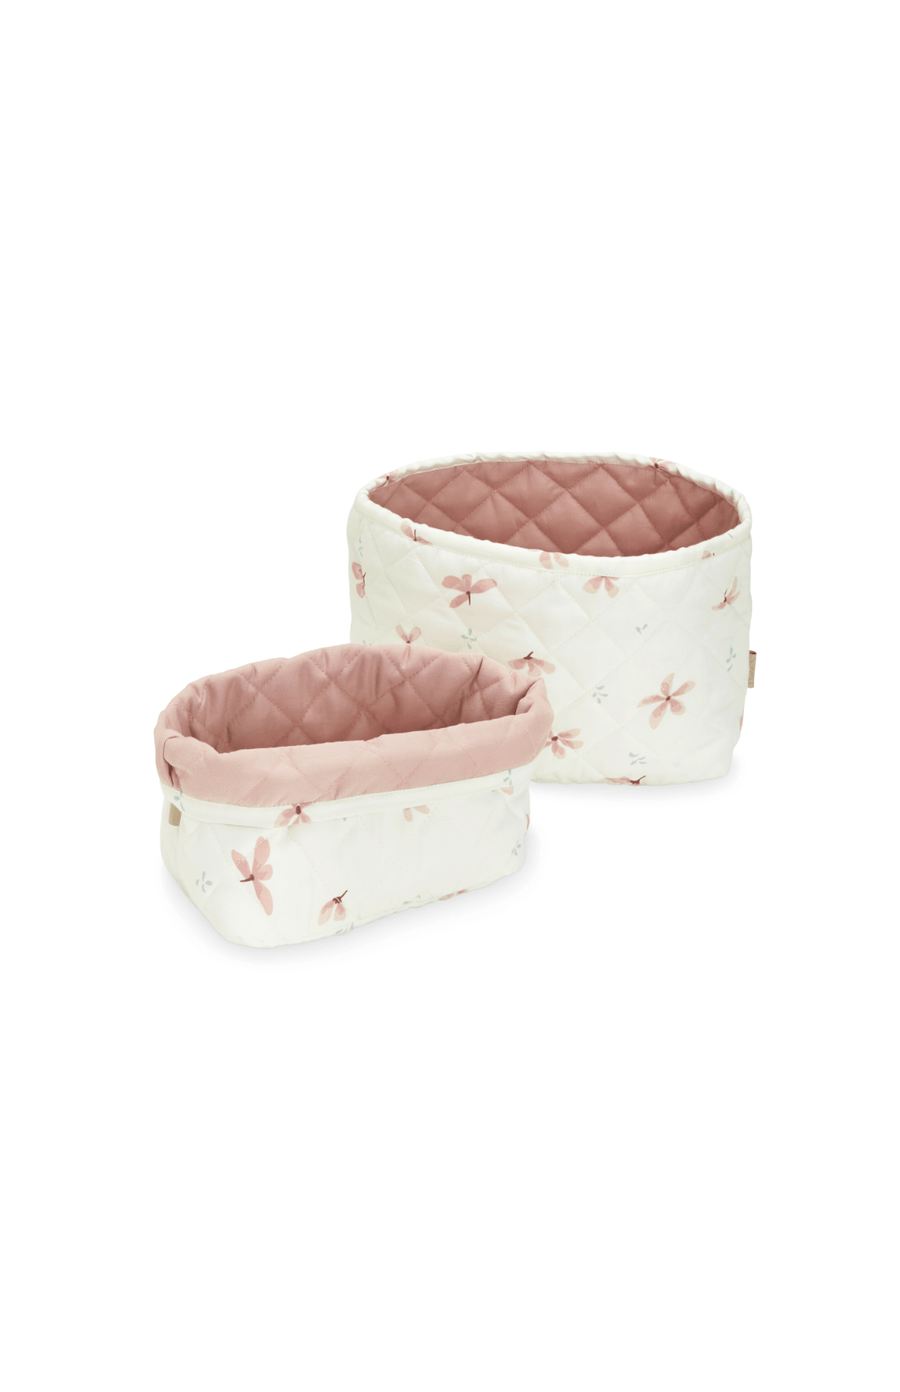 Cam Cam Copenhagen Quilted Storage Basket Set of 2 - Windflower Cream